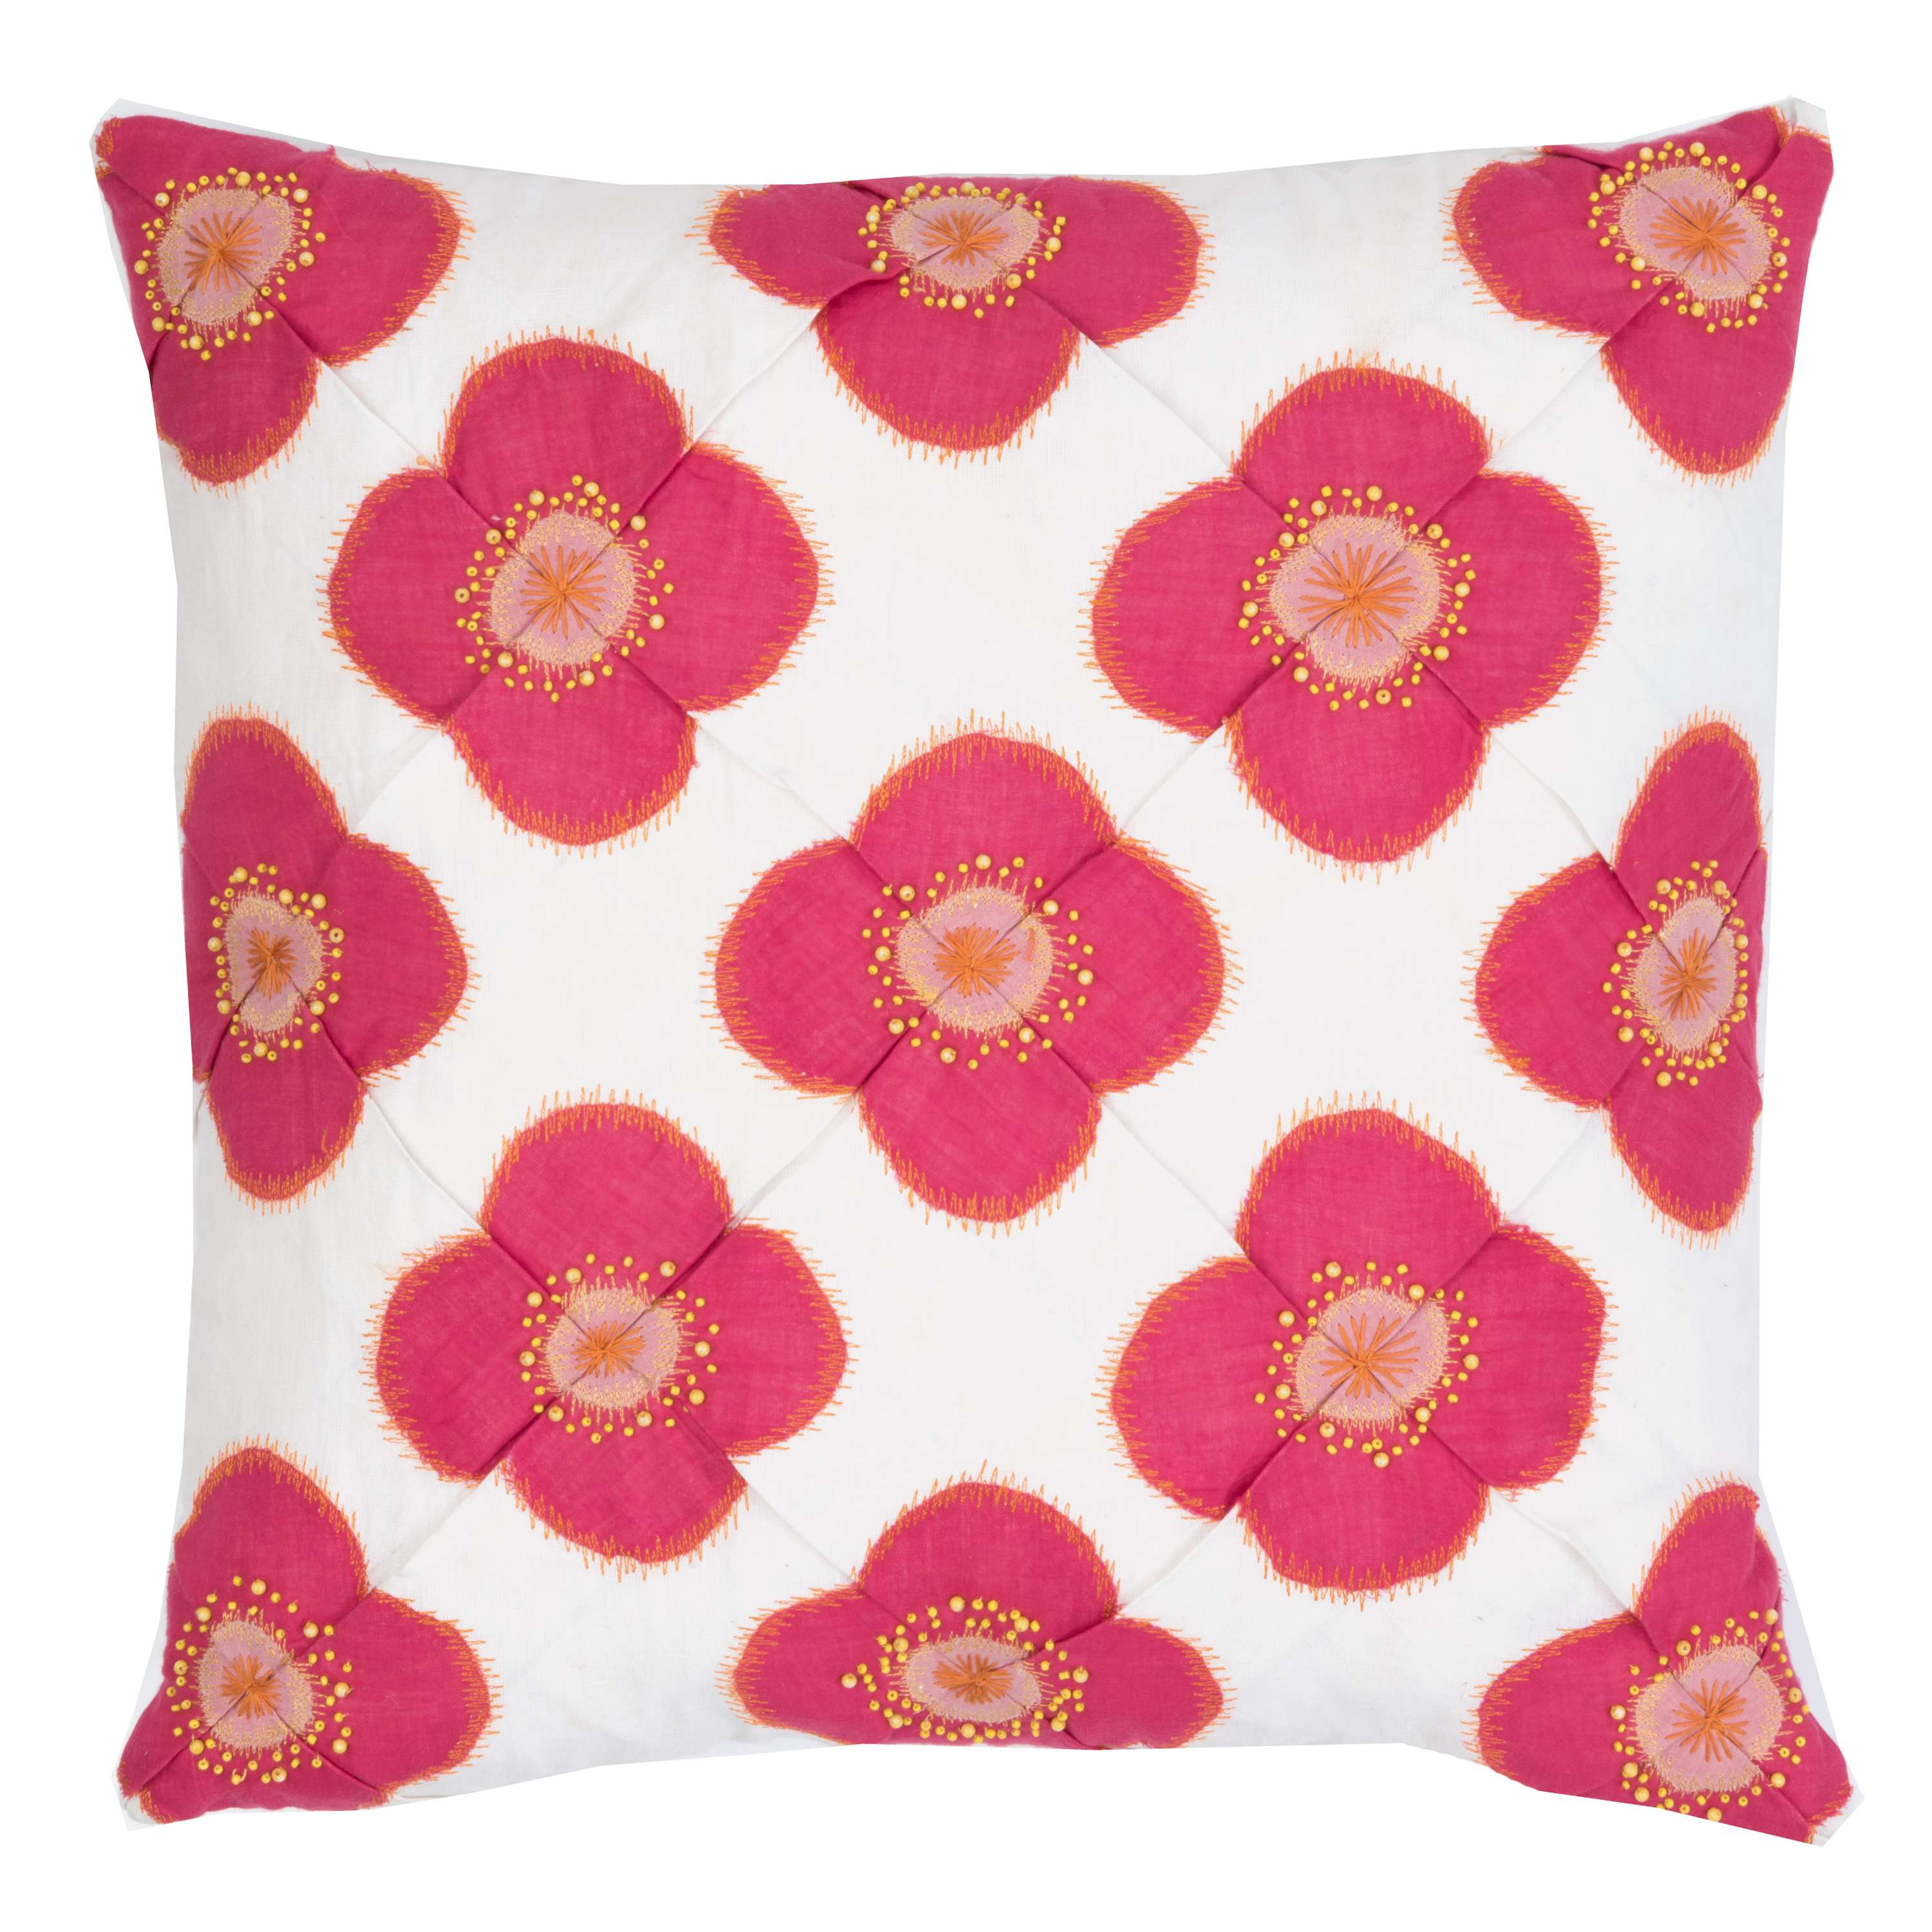 Poppy Pink Decorative Pillow | The Outlet